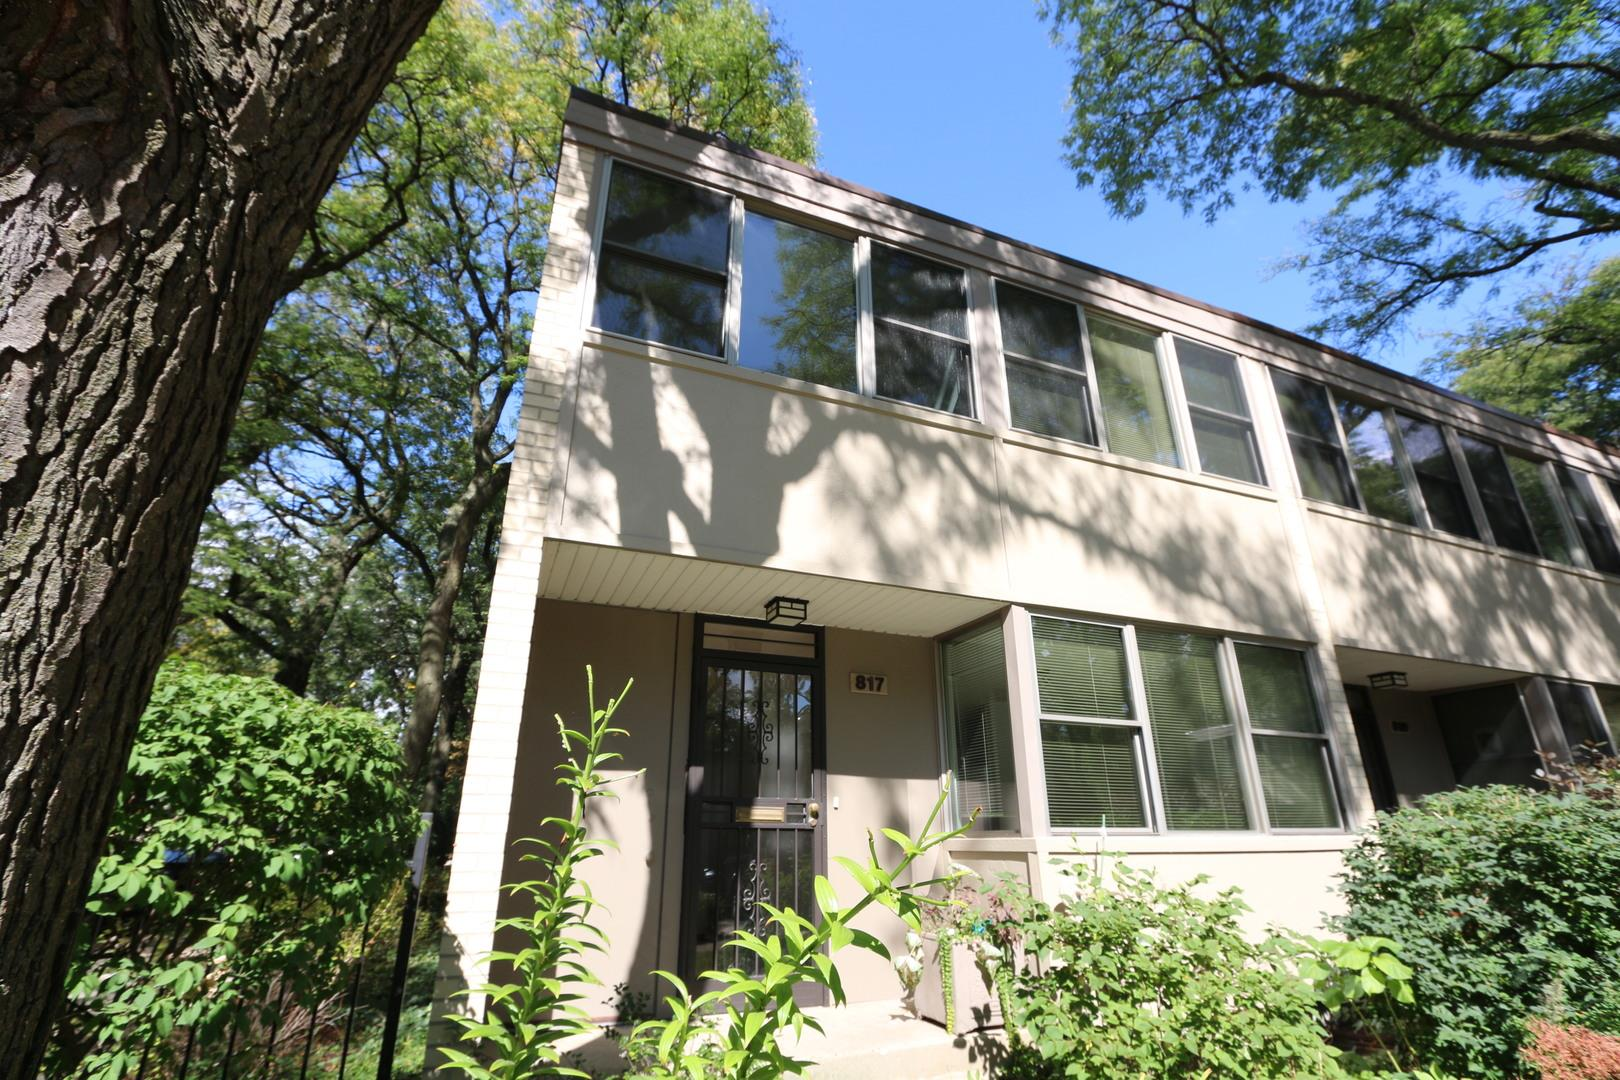 817 S Loomis Street, Chicago, IL 60607 - #: 10940917